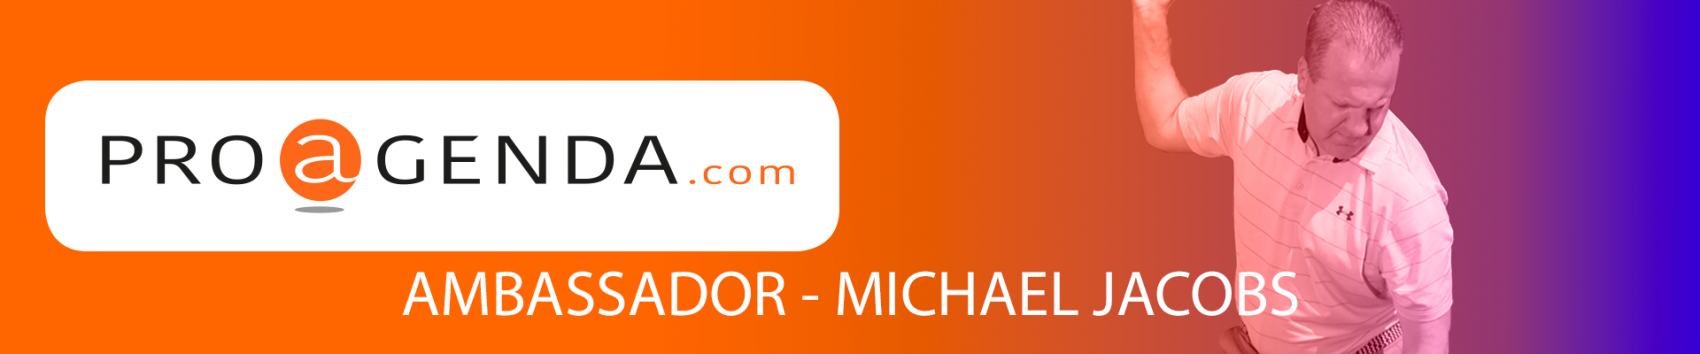 new ambassador of proagenda.com michael jacobs